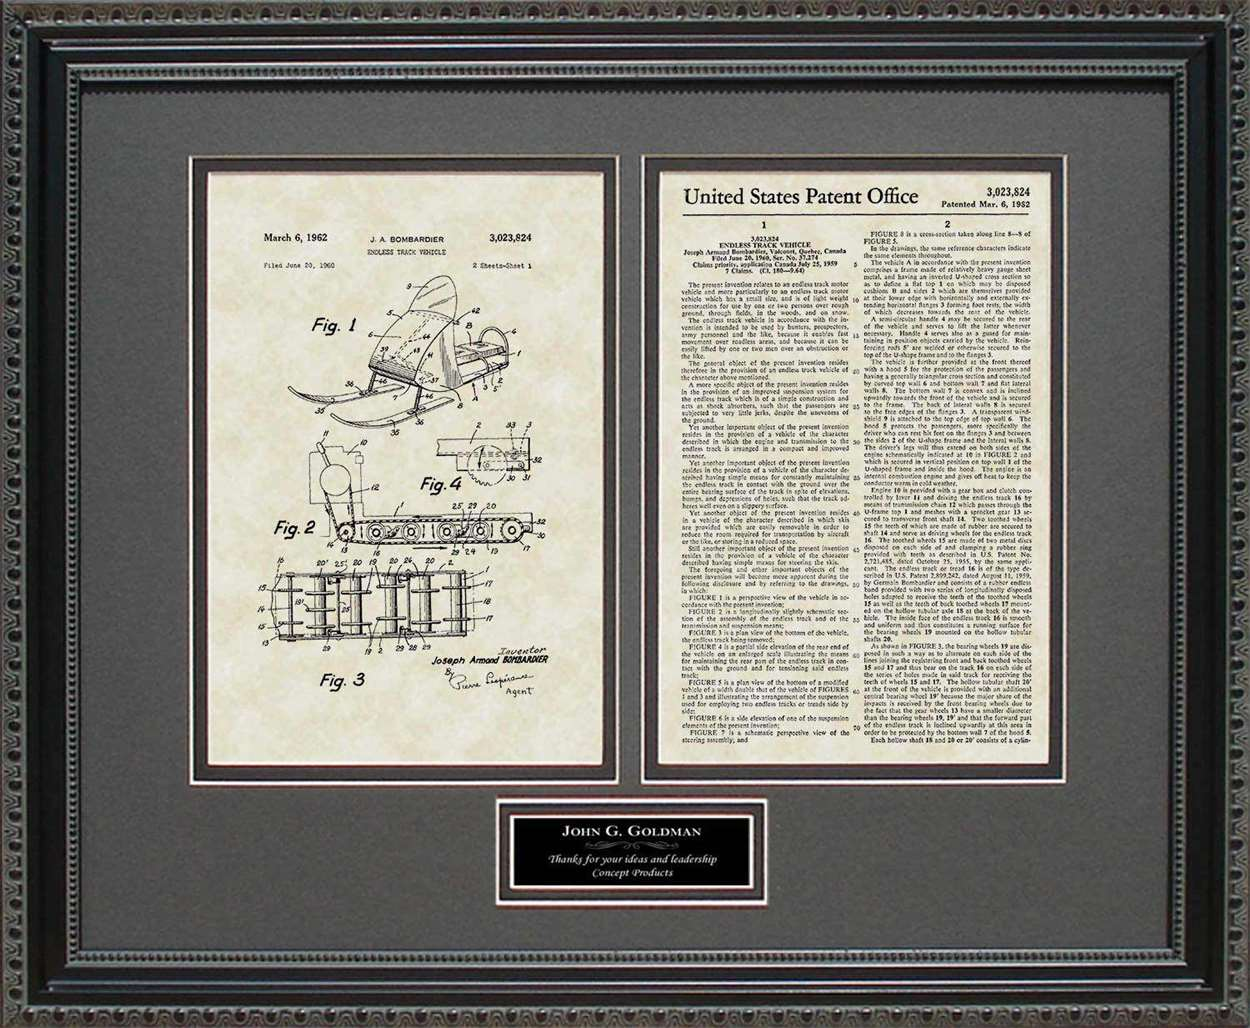 Personalized Snowmobile Patent, Art & Copy, Bombadier, 1962